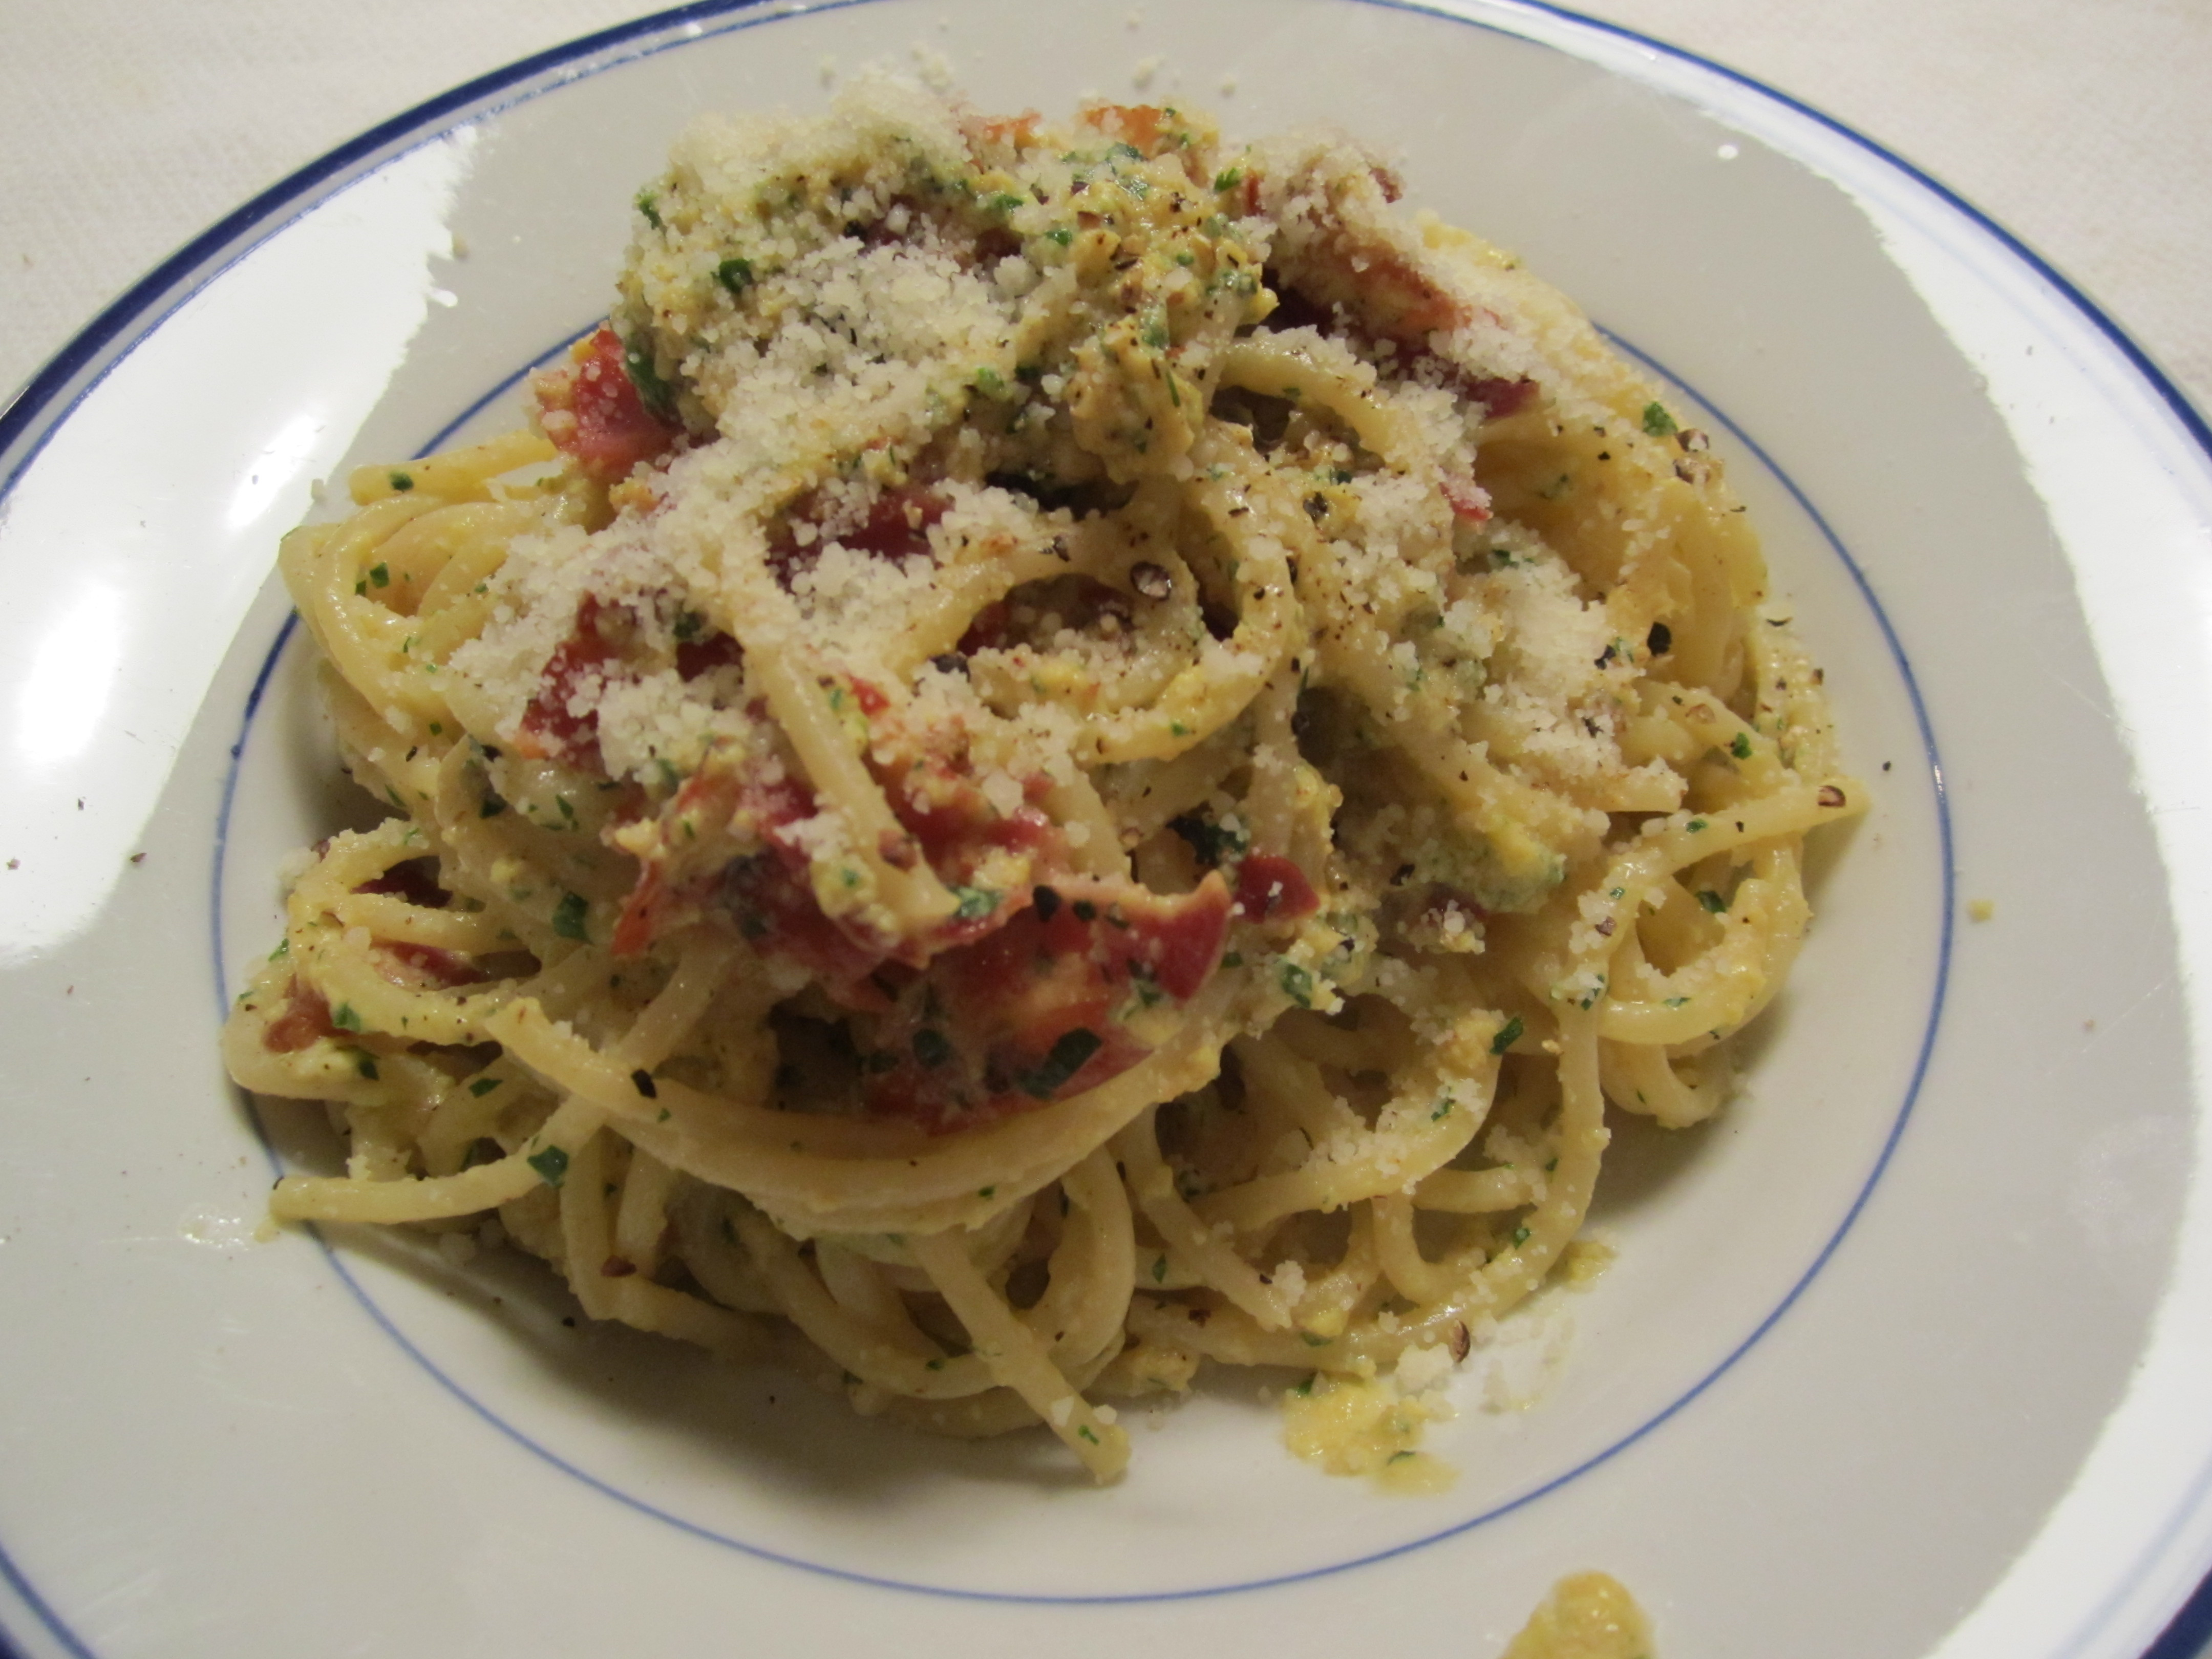 ... to make one of my favorite late-night dishes– pasta alla carbonara